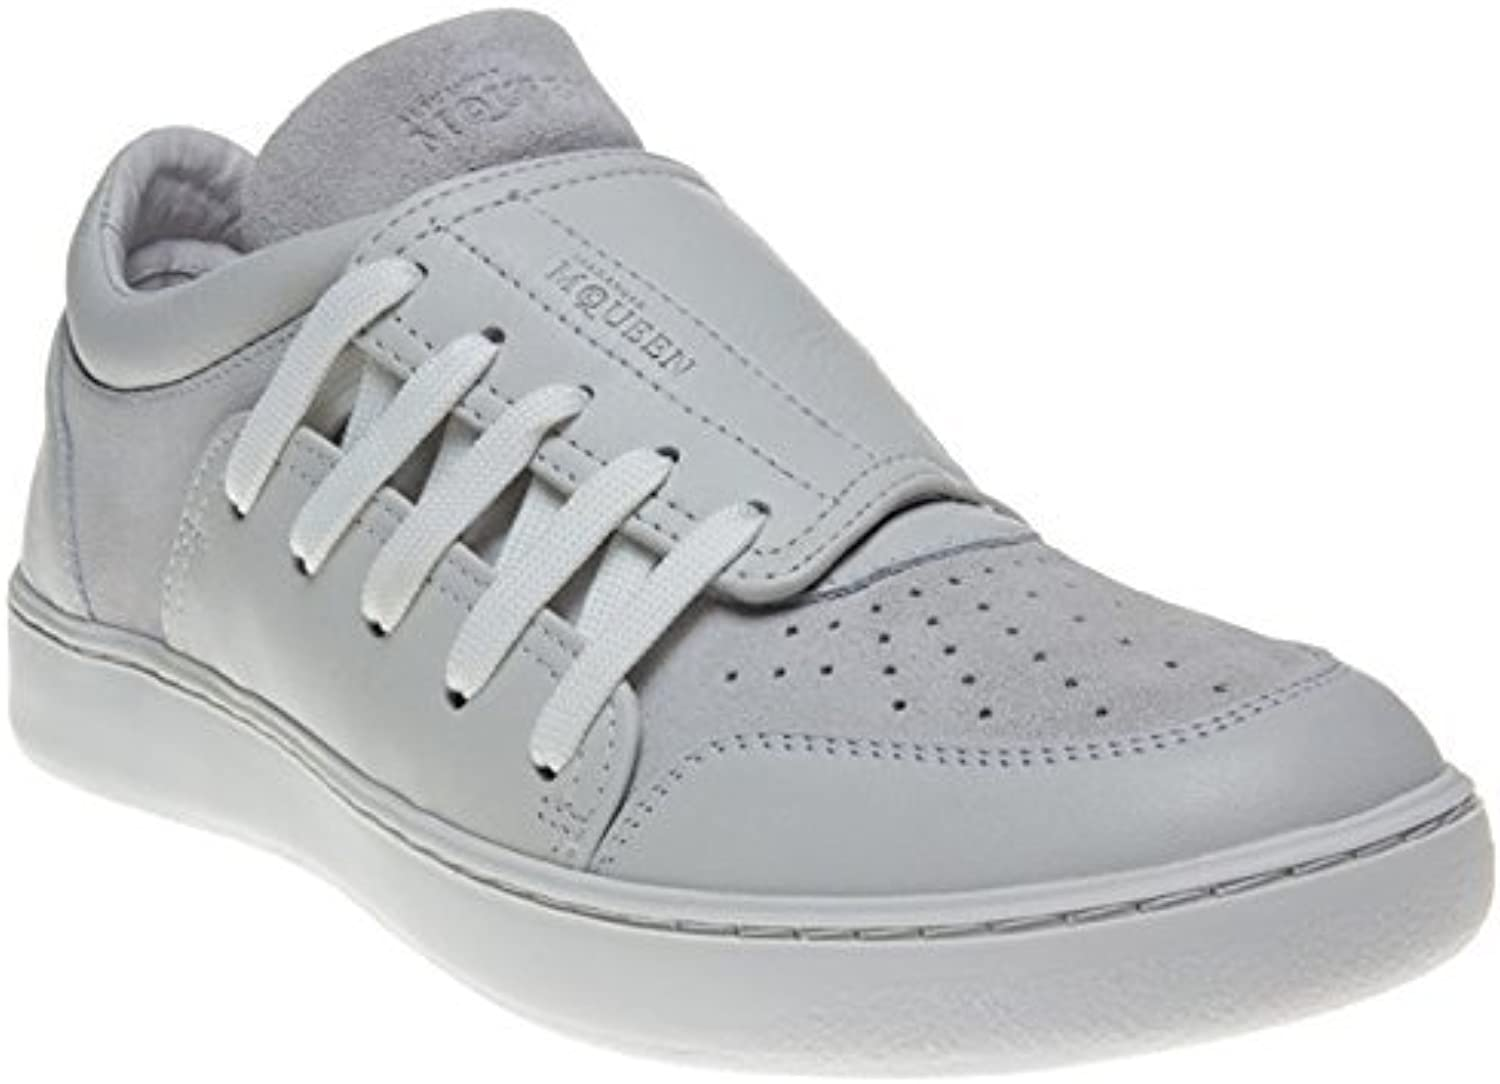 Alexander McQueen Men's Leather and Suede Trainers